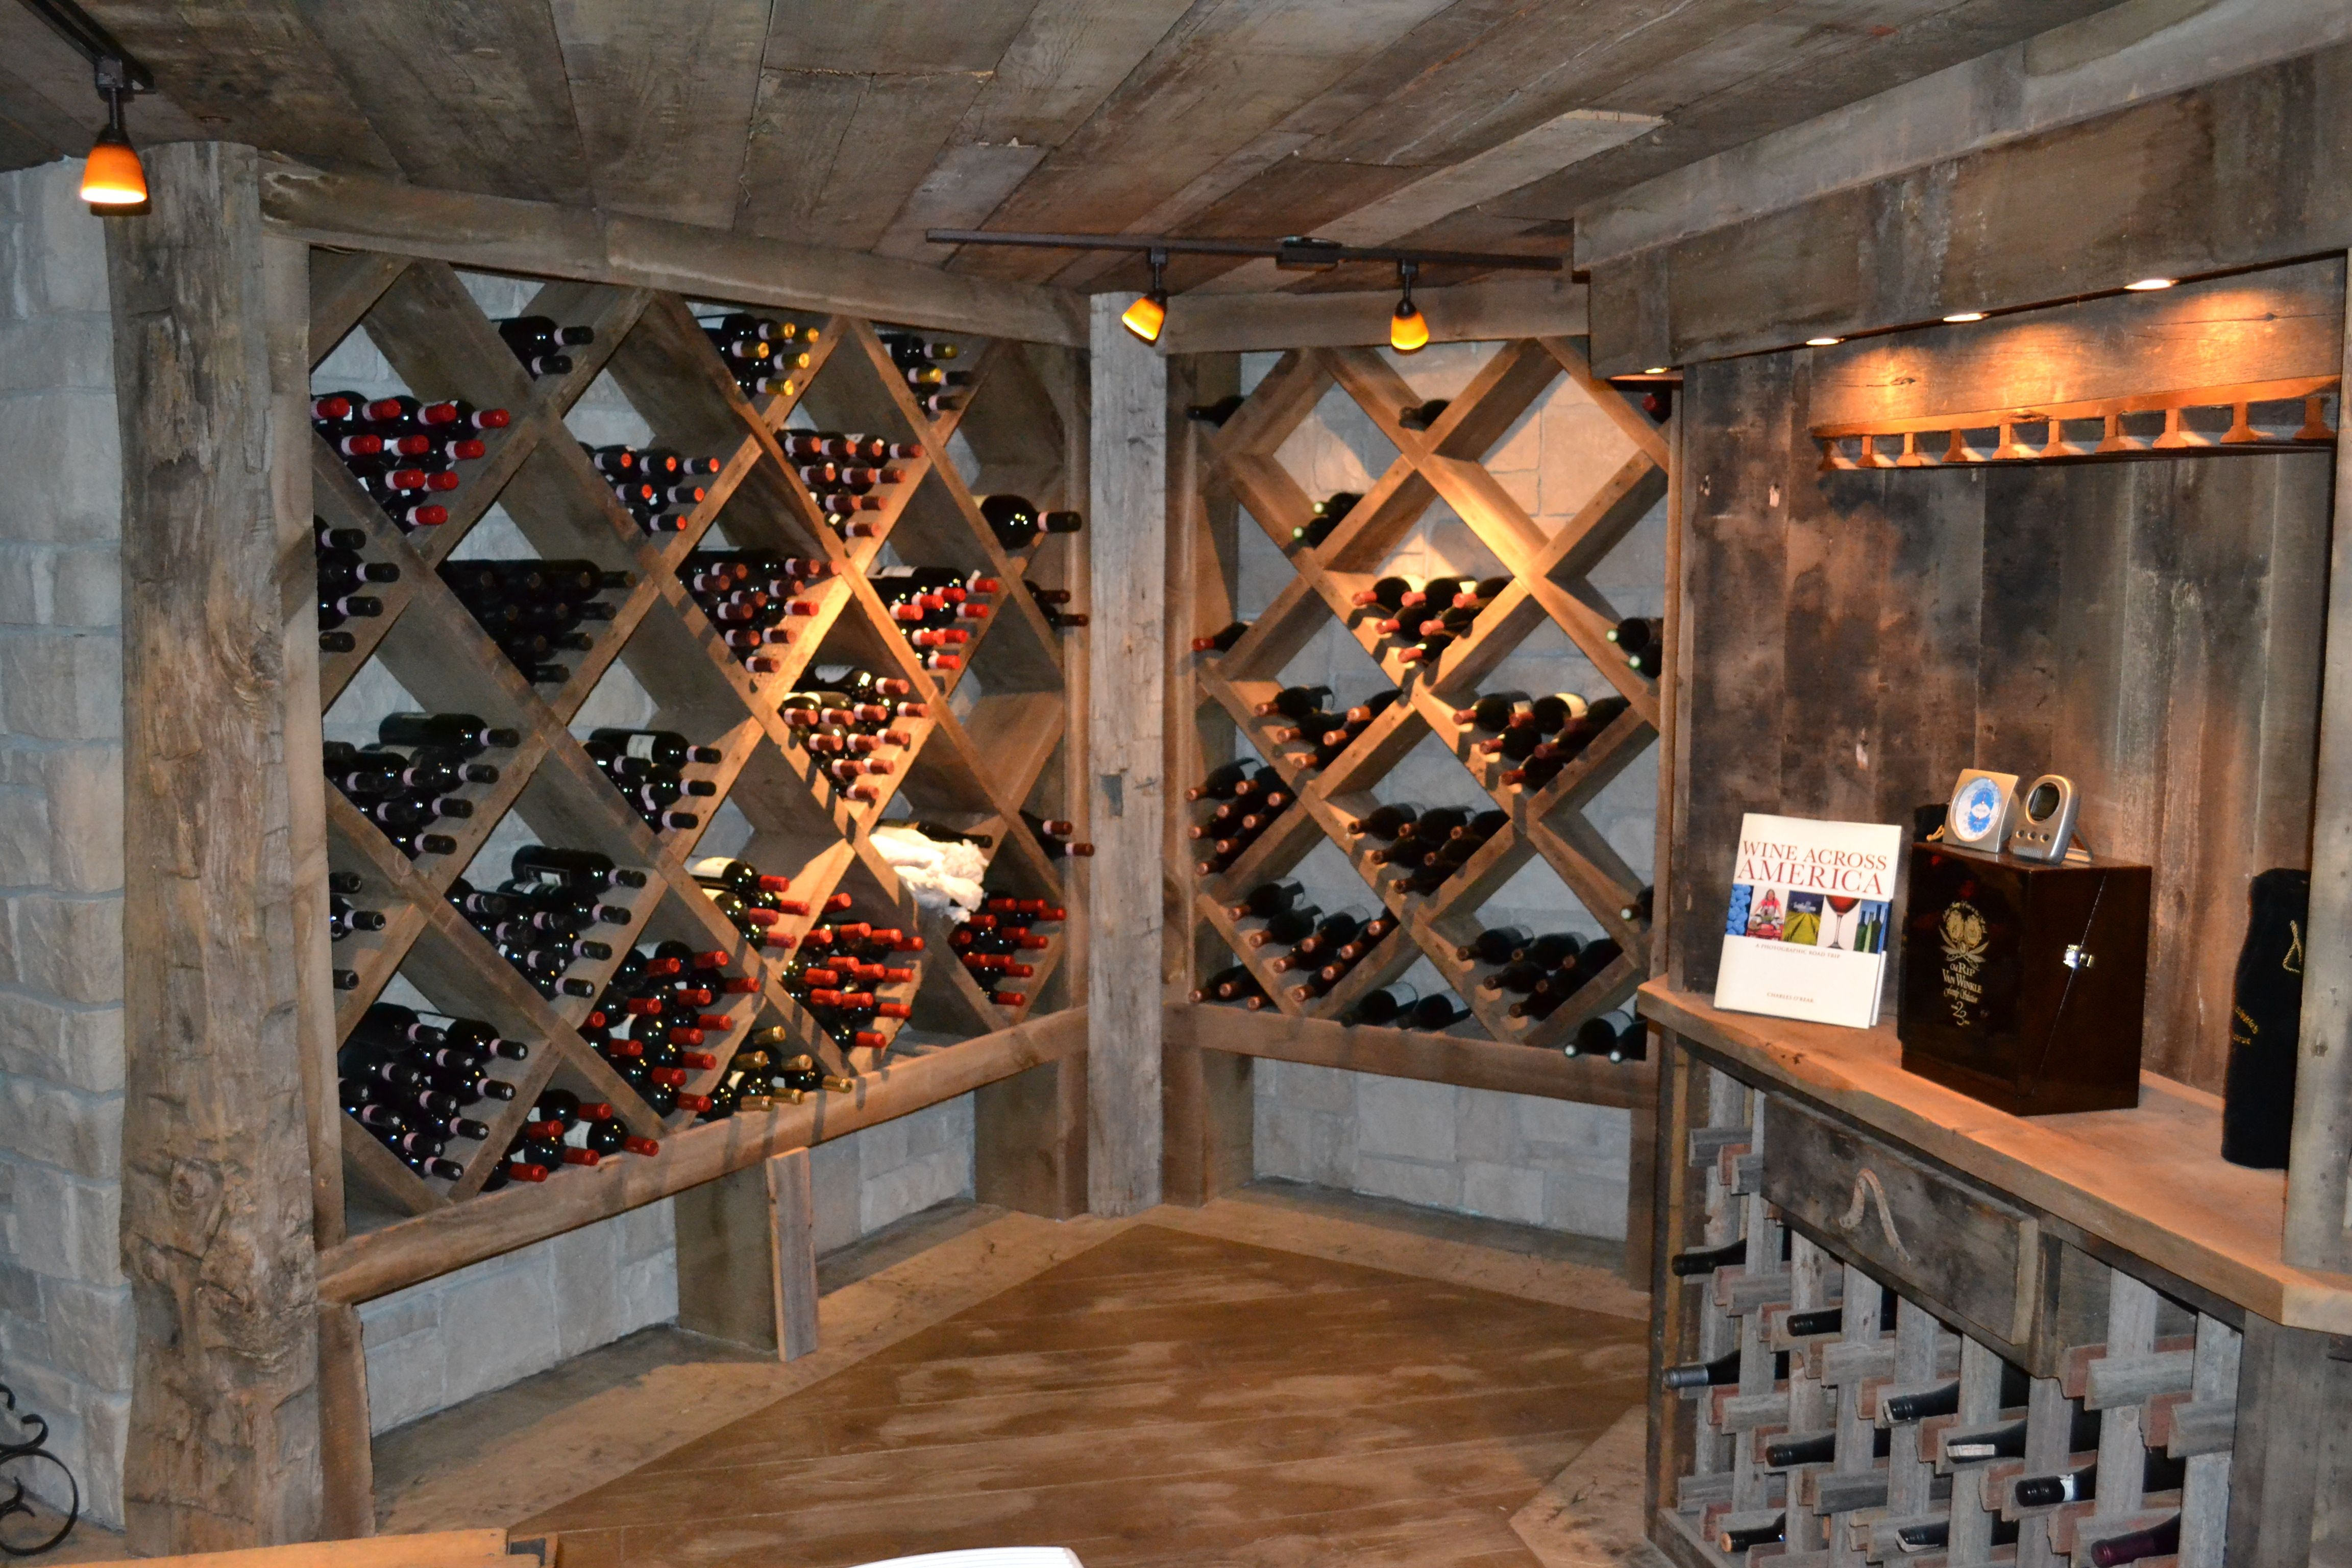 I Love The Rustic Wood Look Of This Awesome Wine Cellar